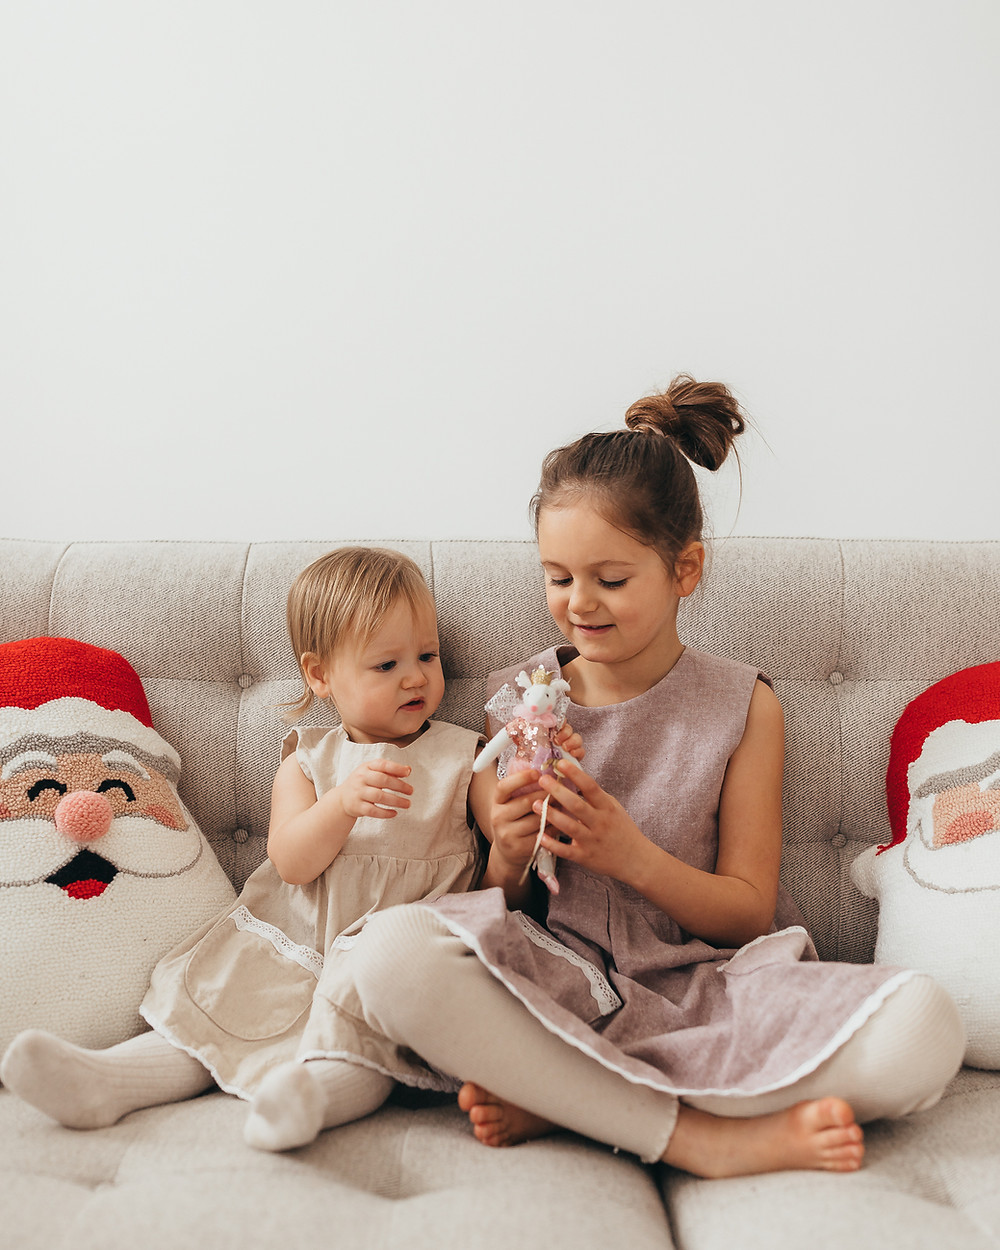 Two little girls in dresses at christmas time sitting on the sofa next to some Santa pillows playing with a glittery mouse holiday decoration.